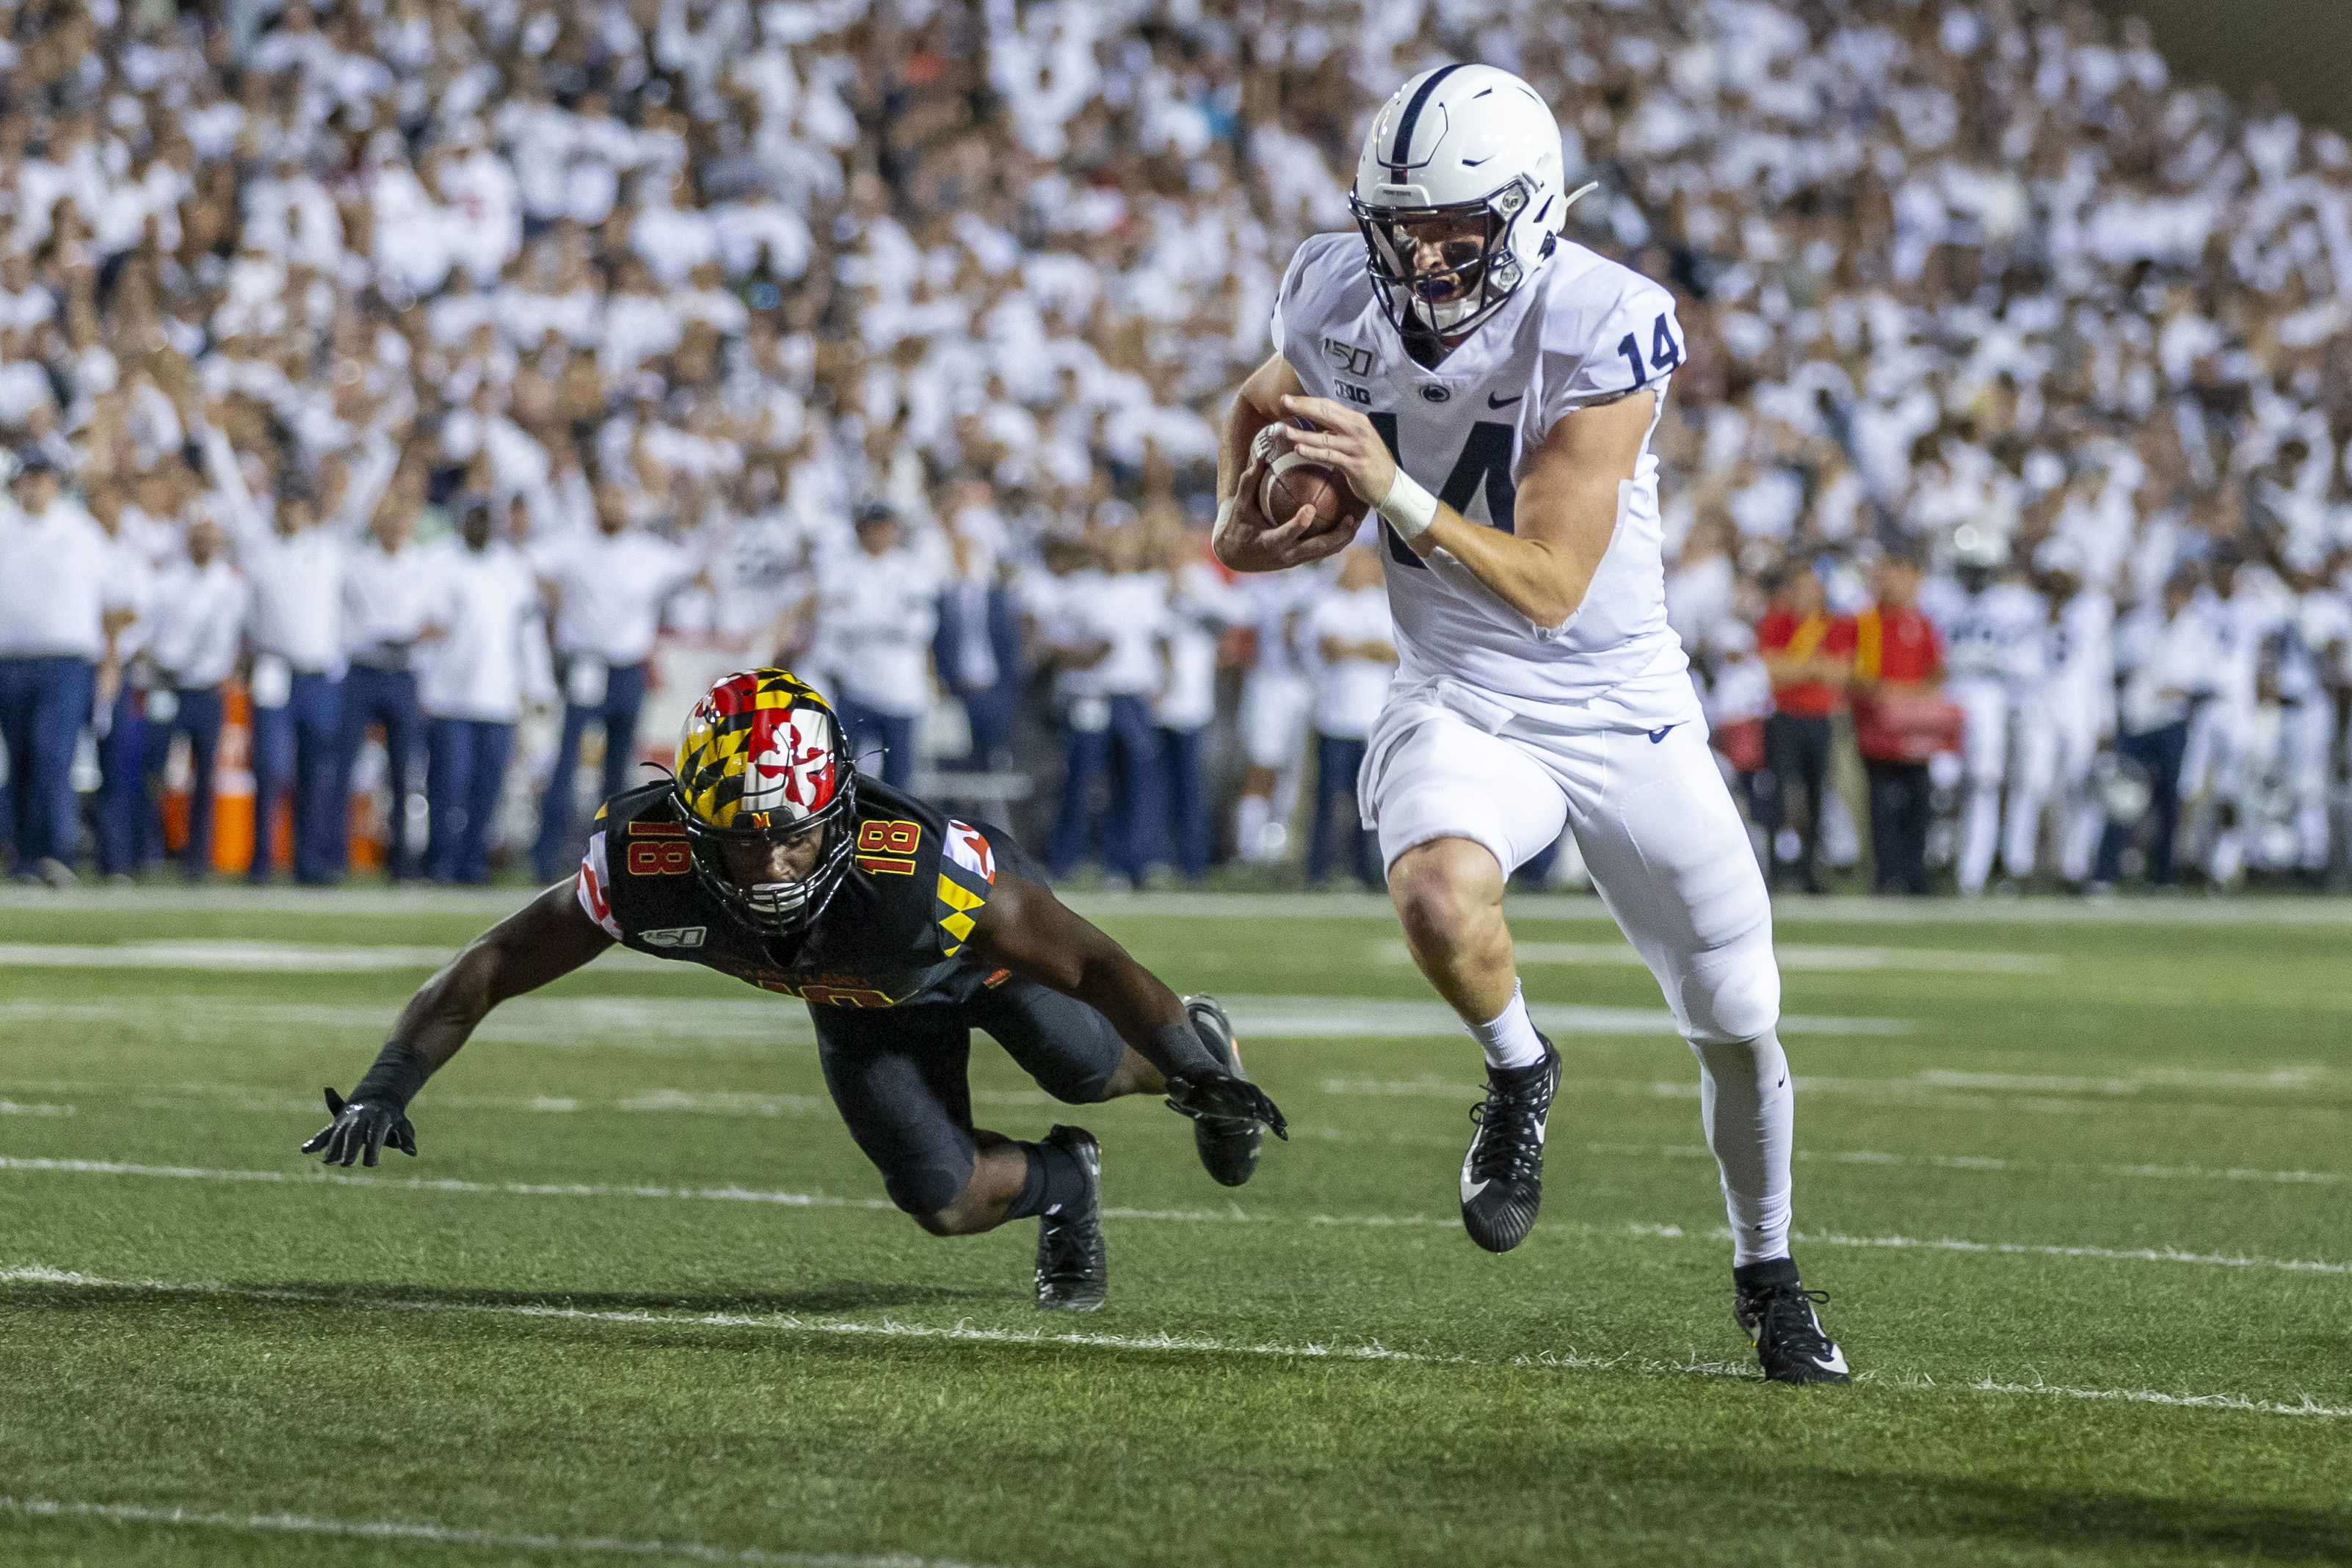 Could neutral site games be in Penn State's future? James Franklin is interested in the idea